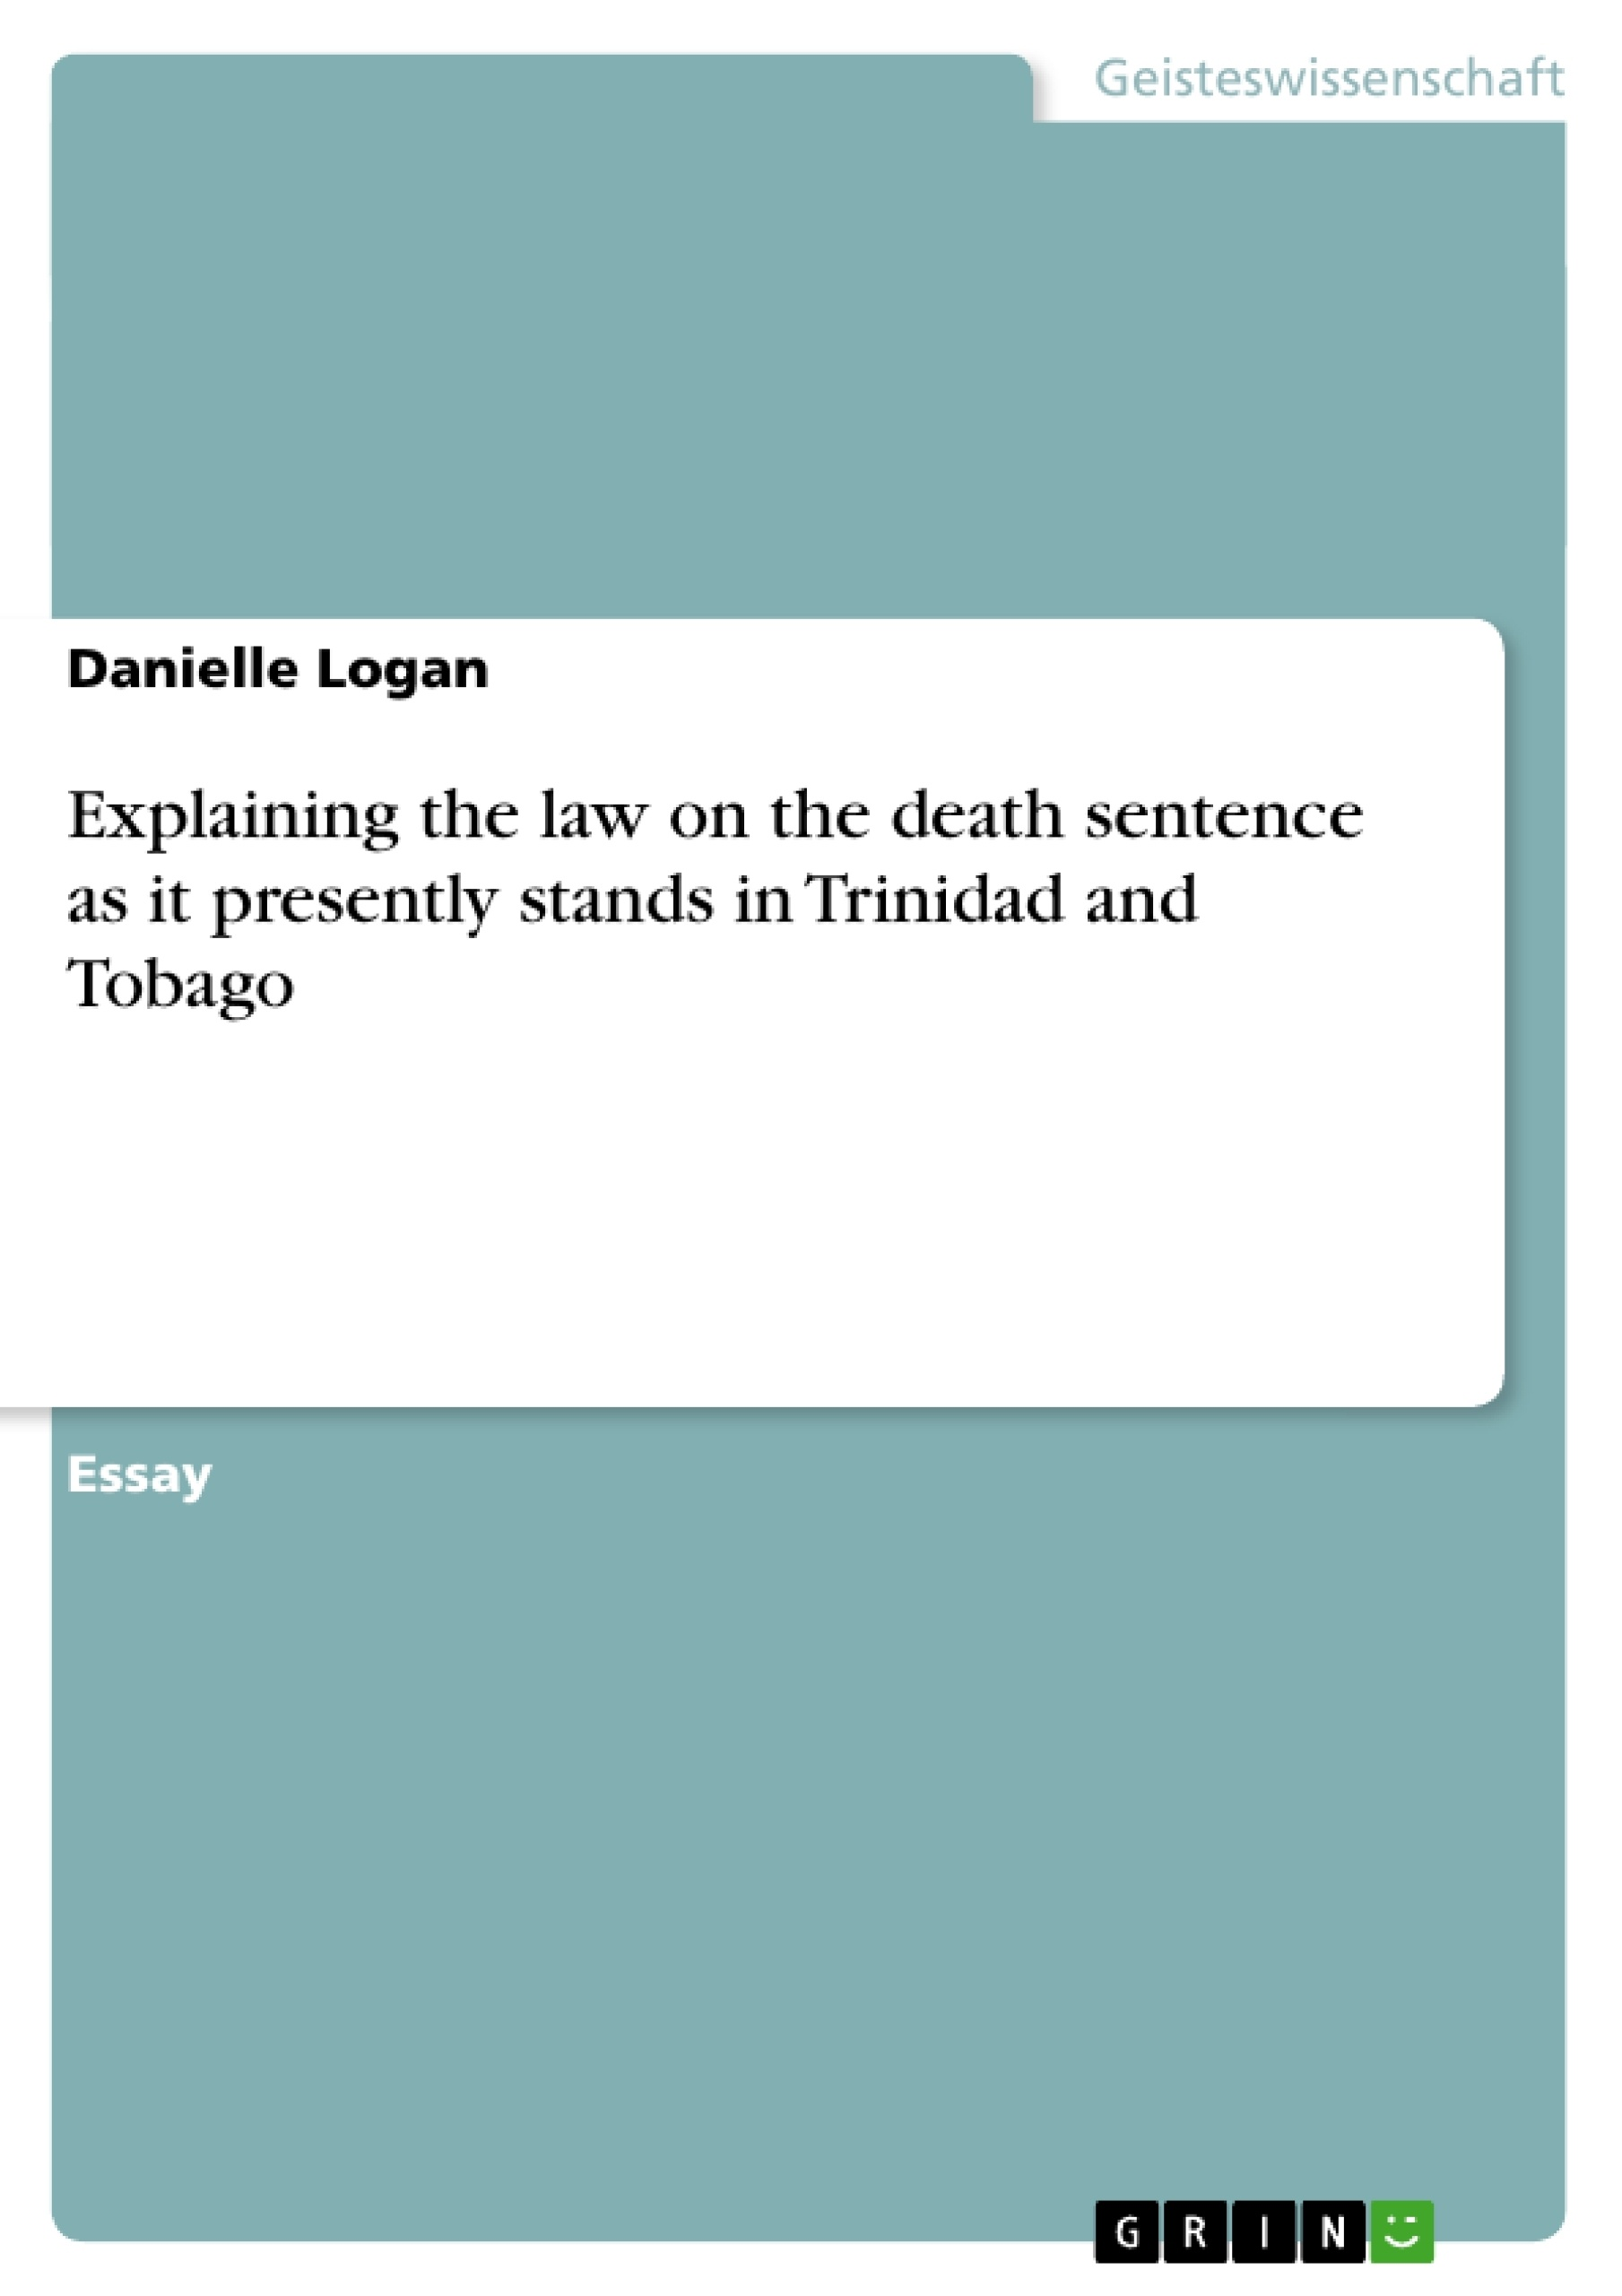 Titel: Explaining the law on the death sentence as it presently stands in Trinidad and Tobago